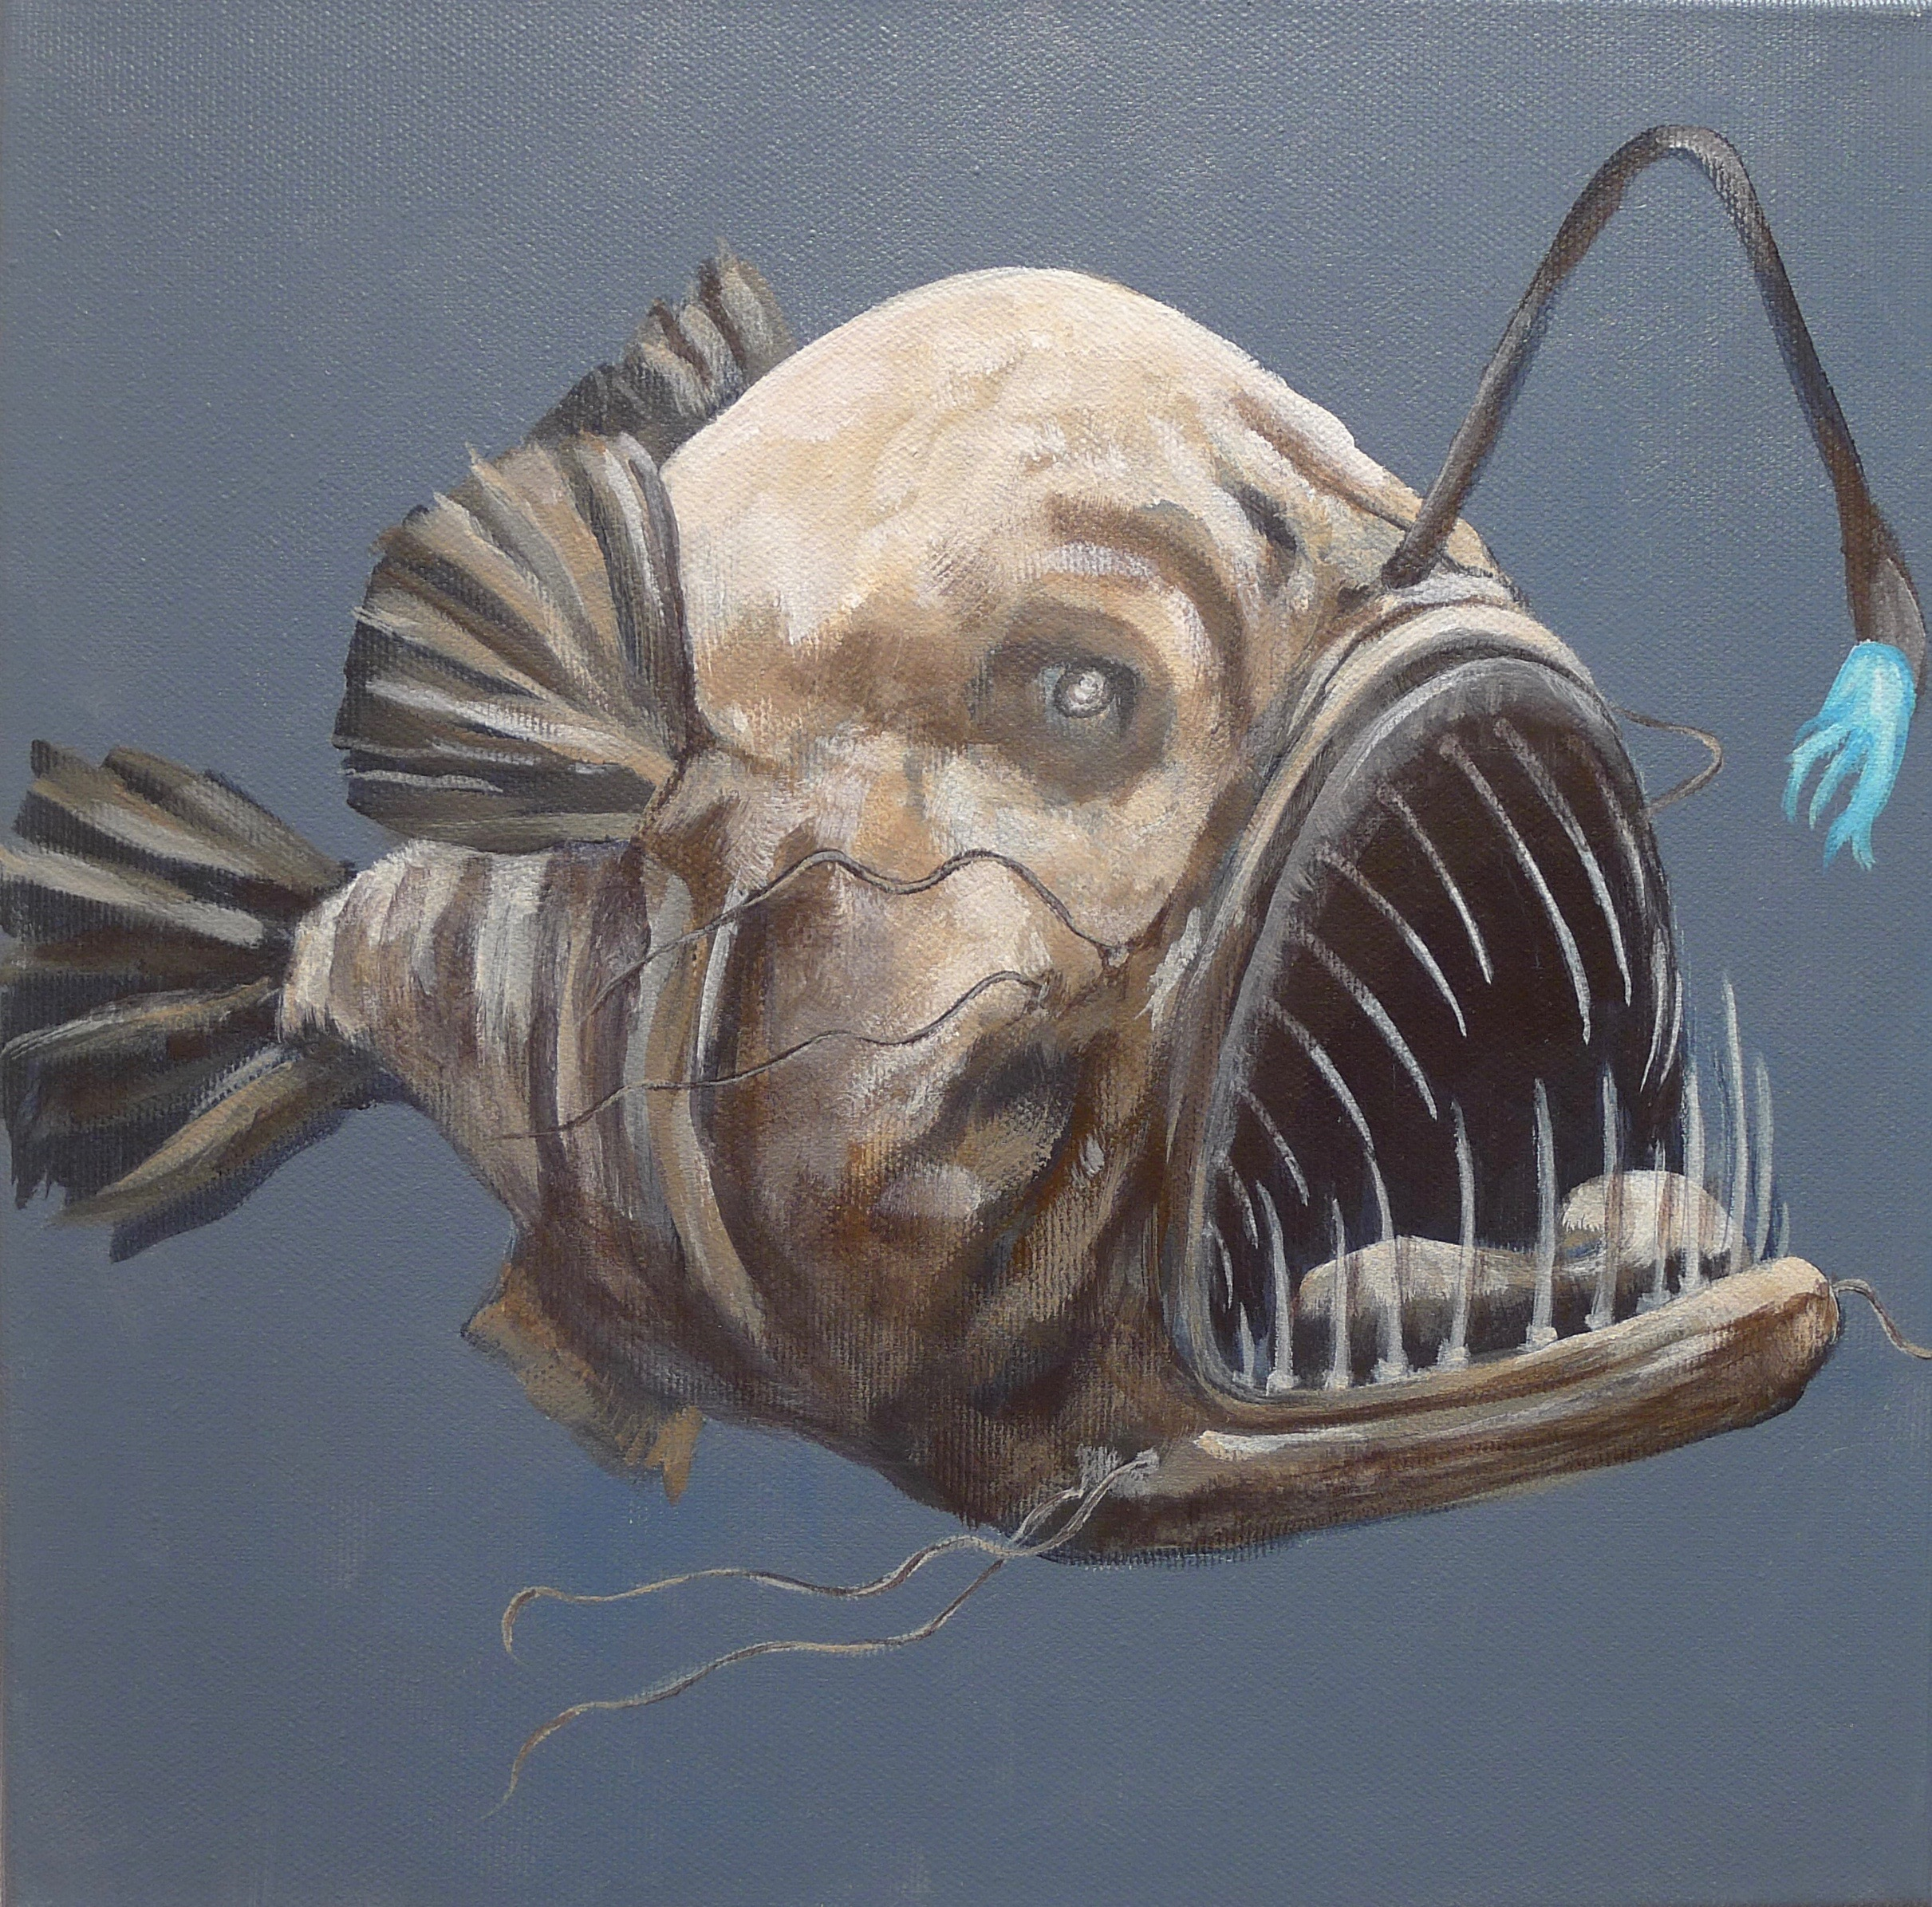 The Deepsea Angler Fish